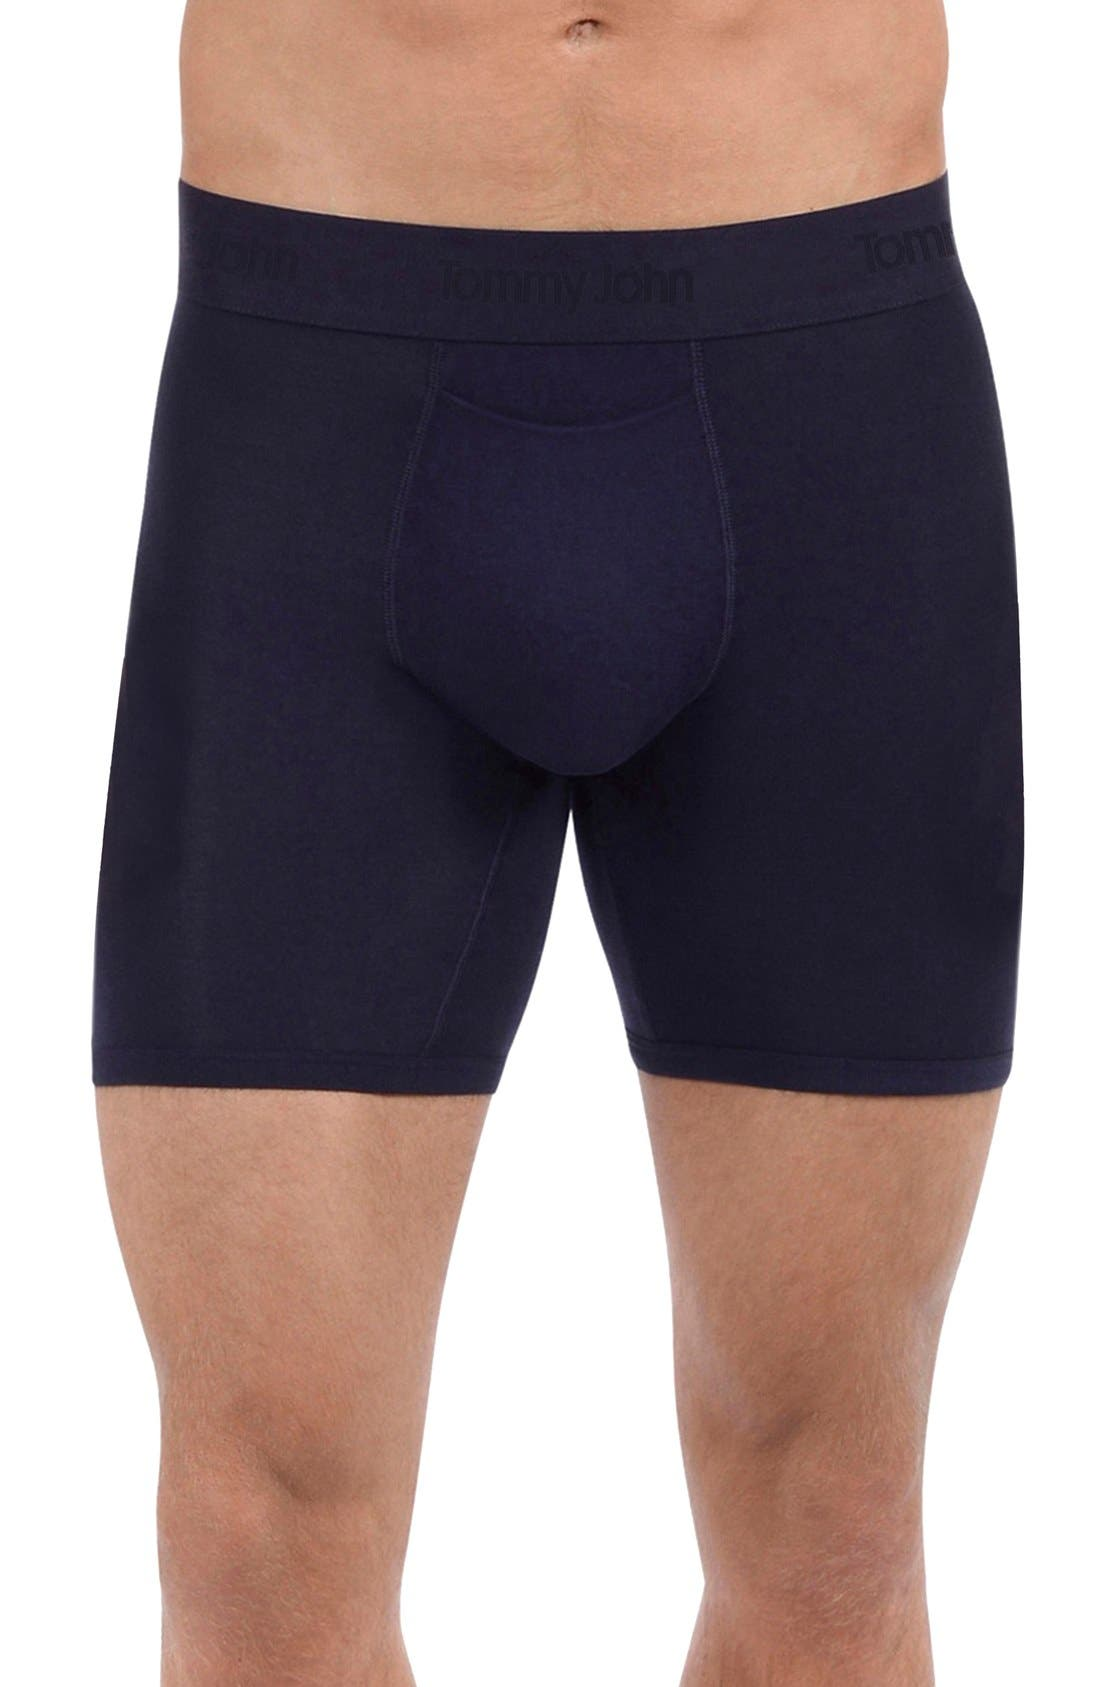 Main Image - Tommy John 'Second Skin' Boxer Briefs